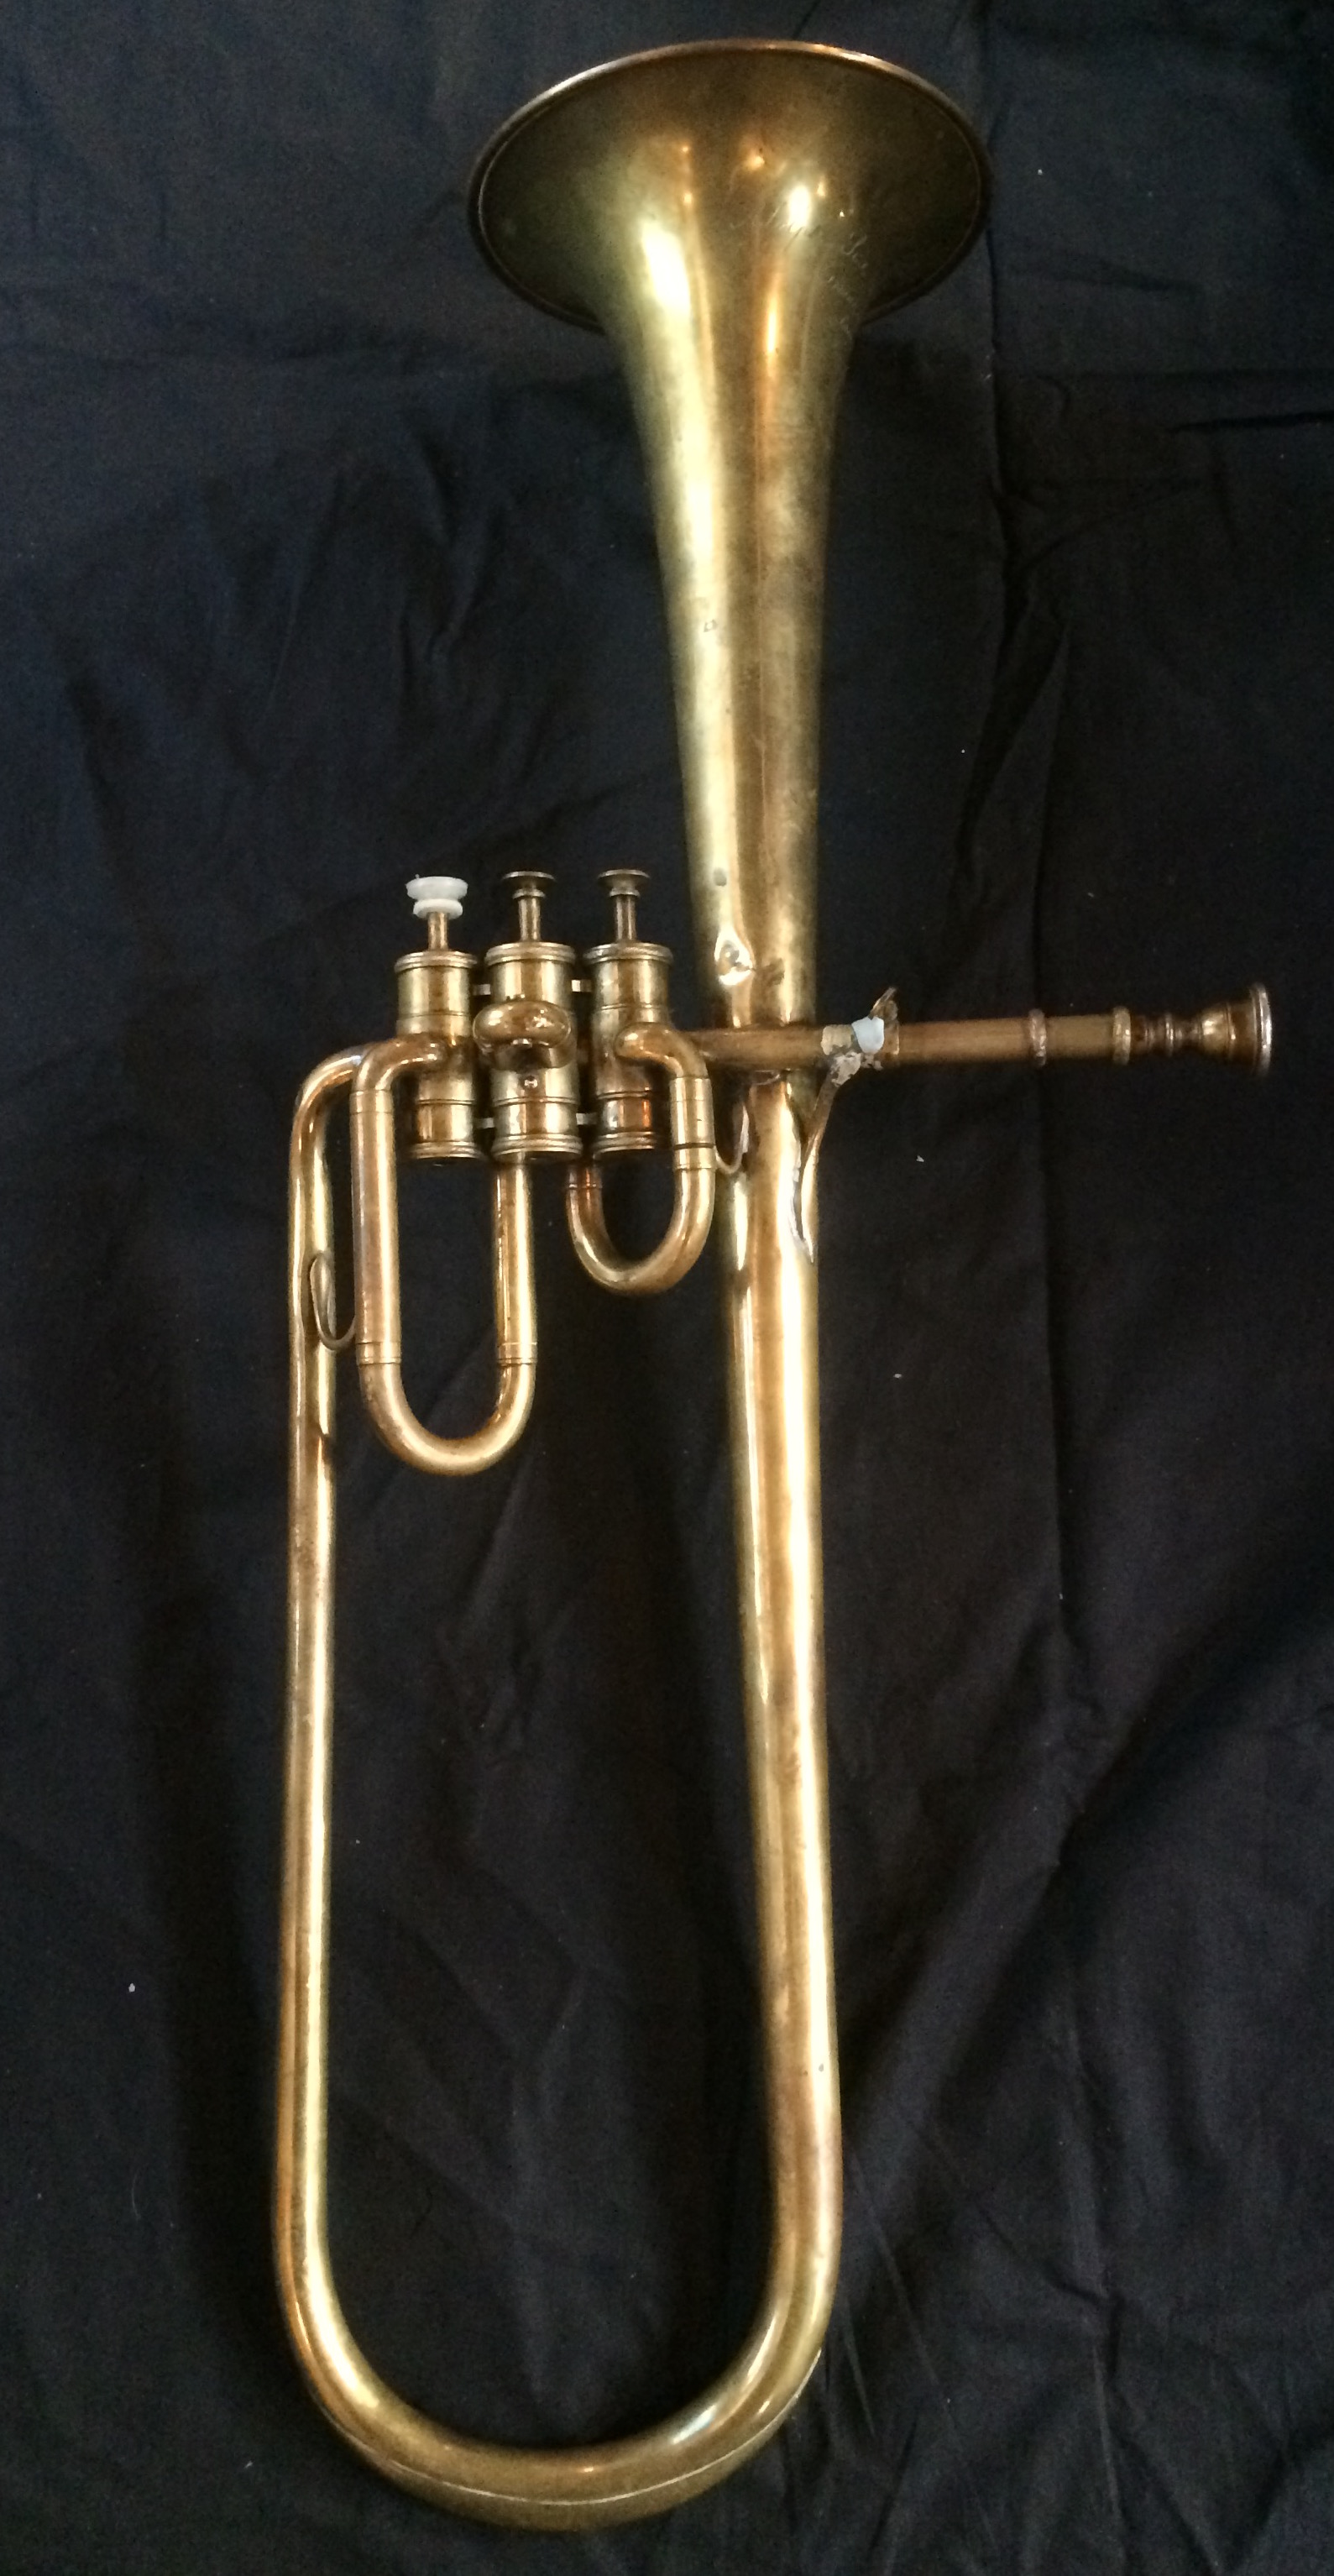 Contralto saxhorn in B flat by Adolphe Sax (Paris), sold by Distin & Sons, Cranbourne Street, Leicester Square, London. c.1849–1850.